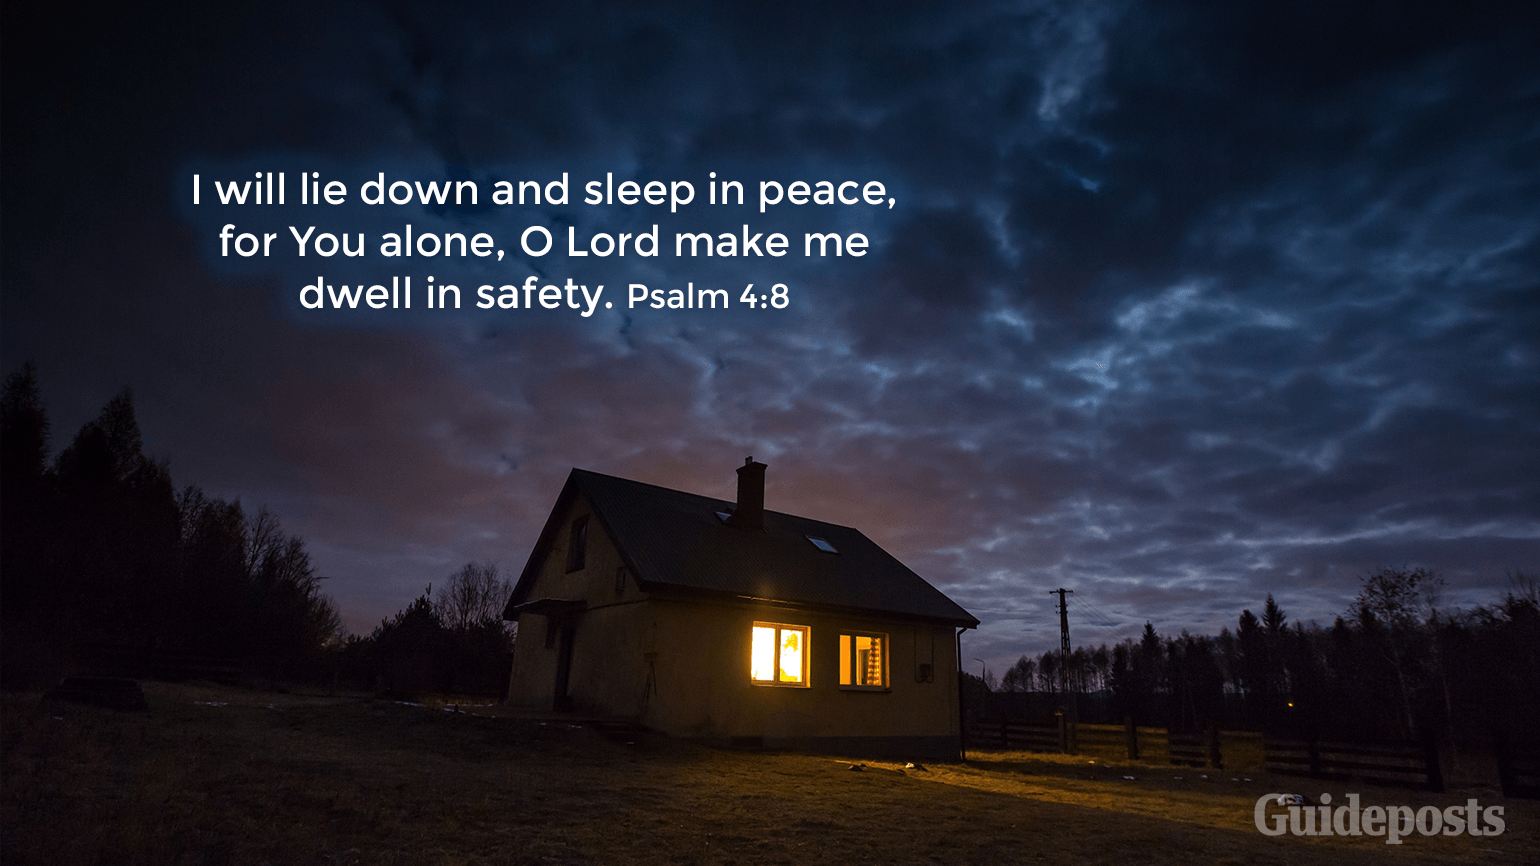 7 Bible Verses for a Good Night's Sleep